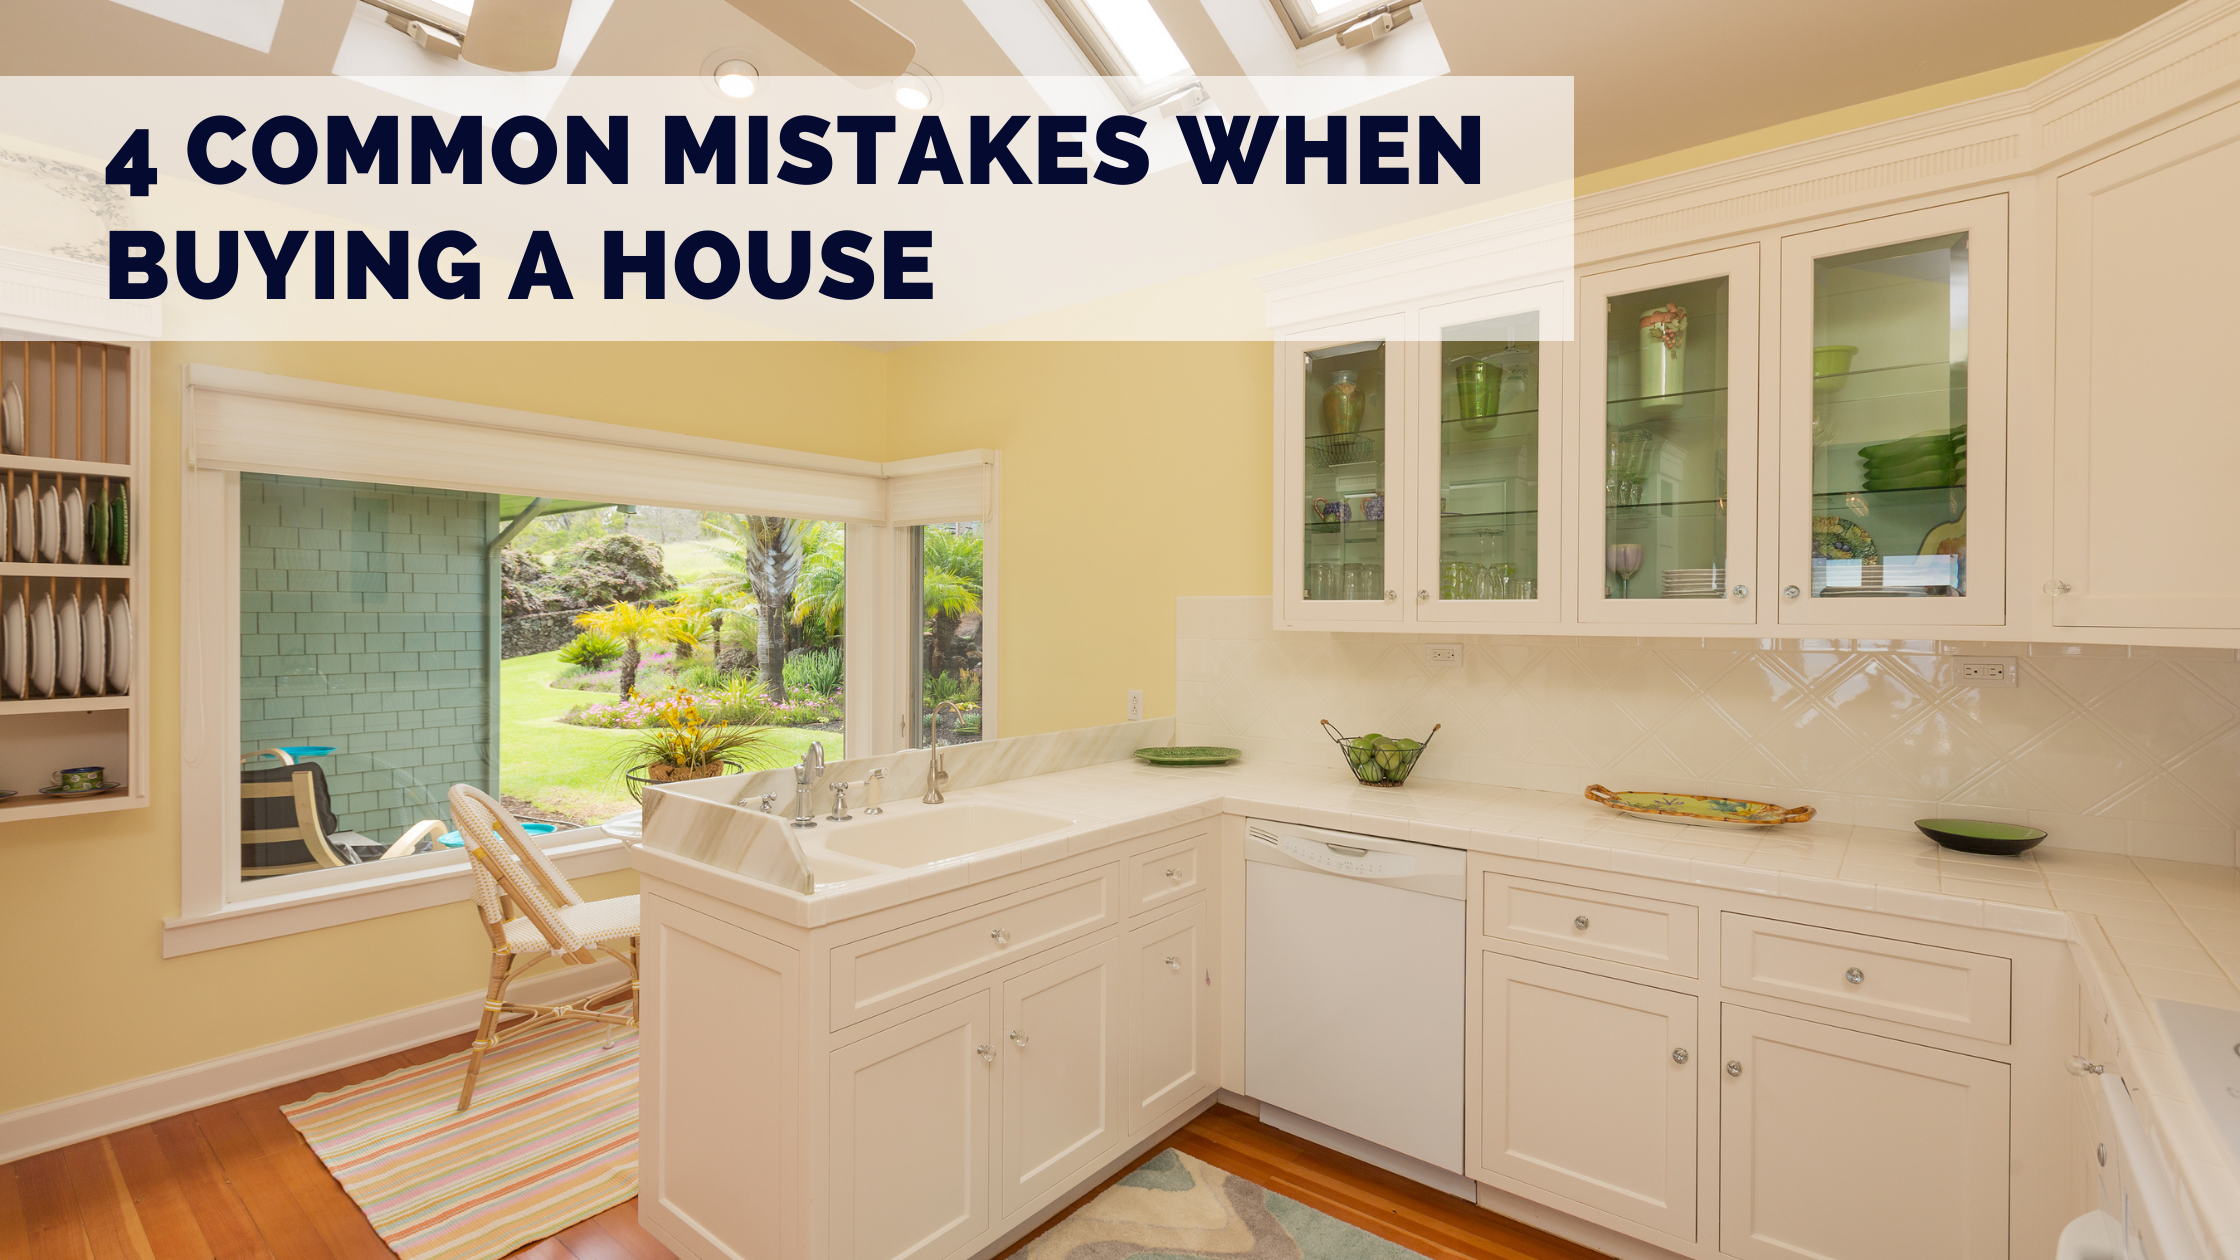 4 Common Mistakes When Buying a House